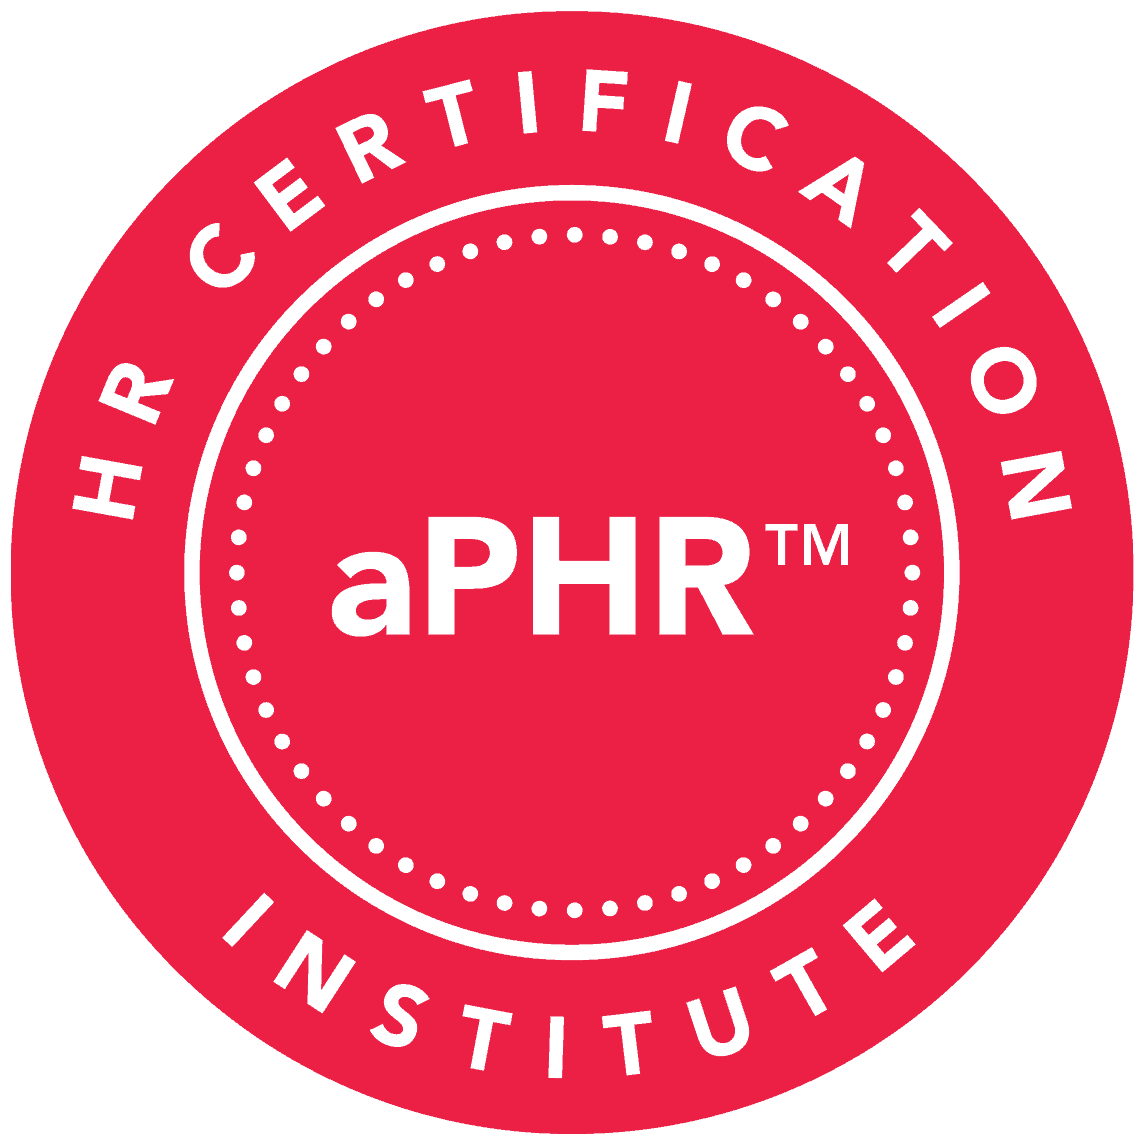 Aphr Certification Course Hr Girlfriends